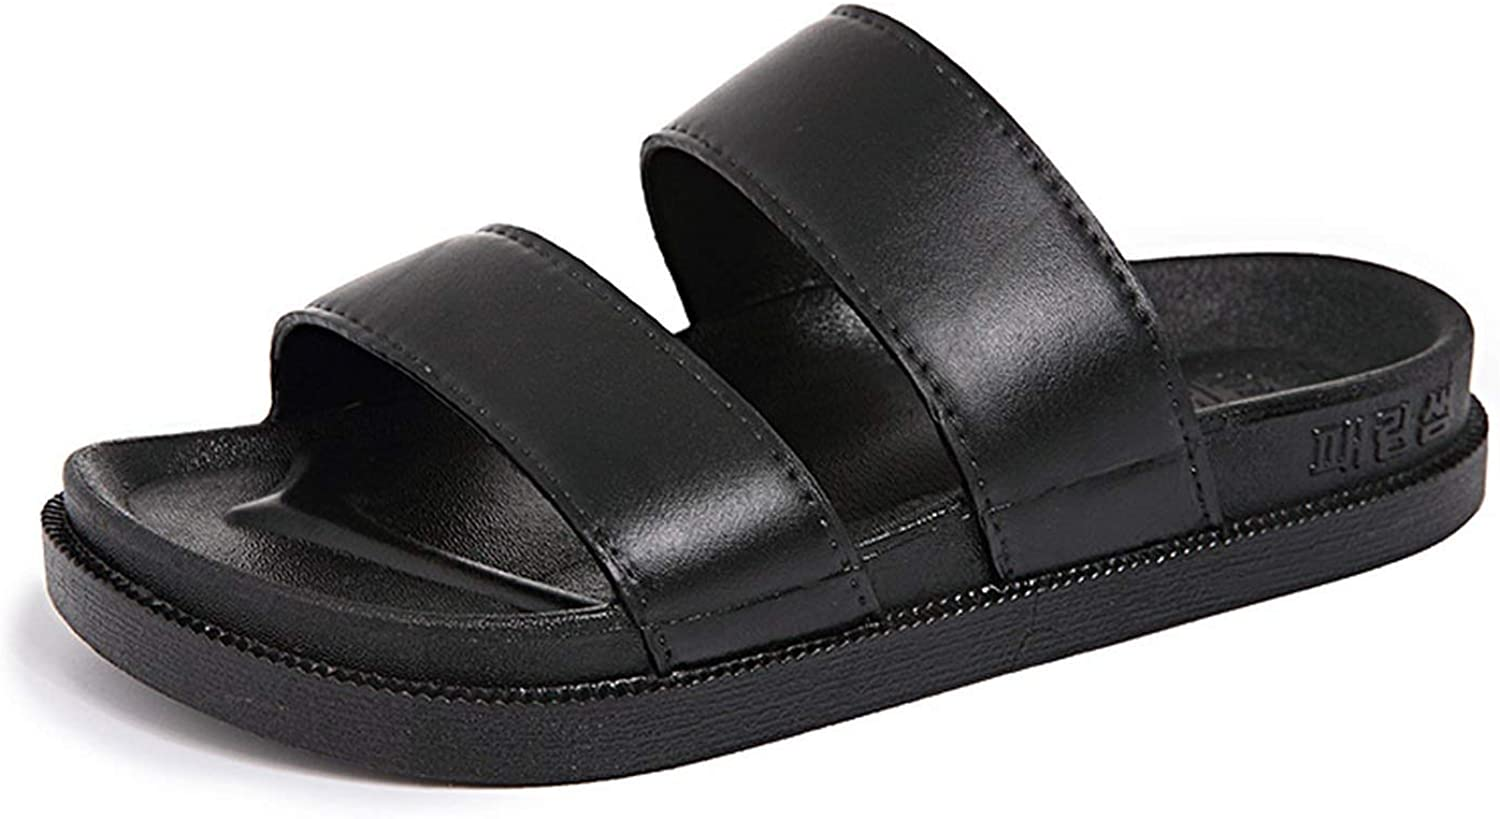 Can't be satisfied 2019 Sandals Men Home Slippers Leather Slippers Mens Slides Non-Slip Badslippers Summer Sandals Men Flip Flops